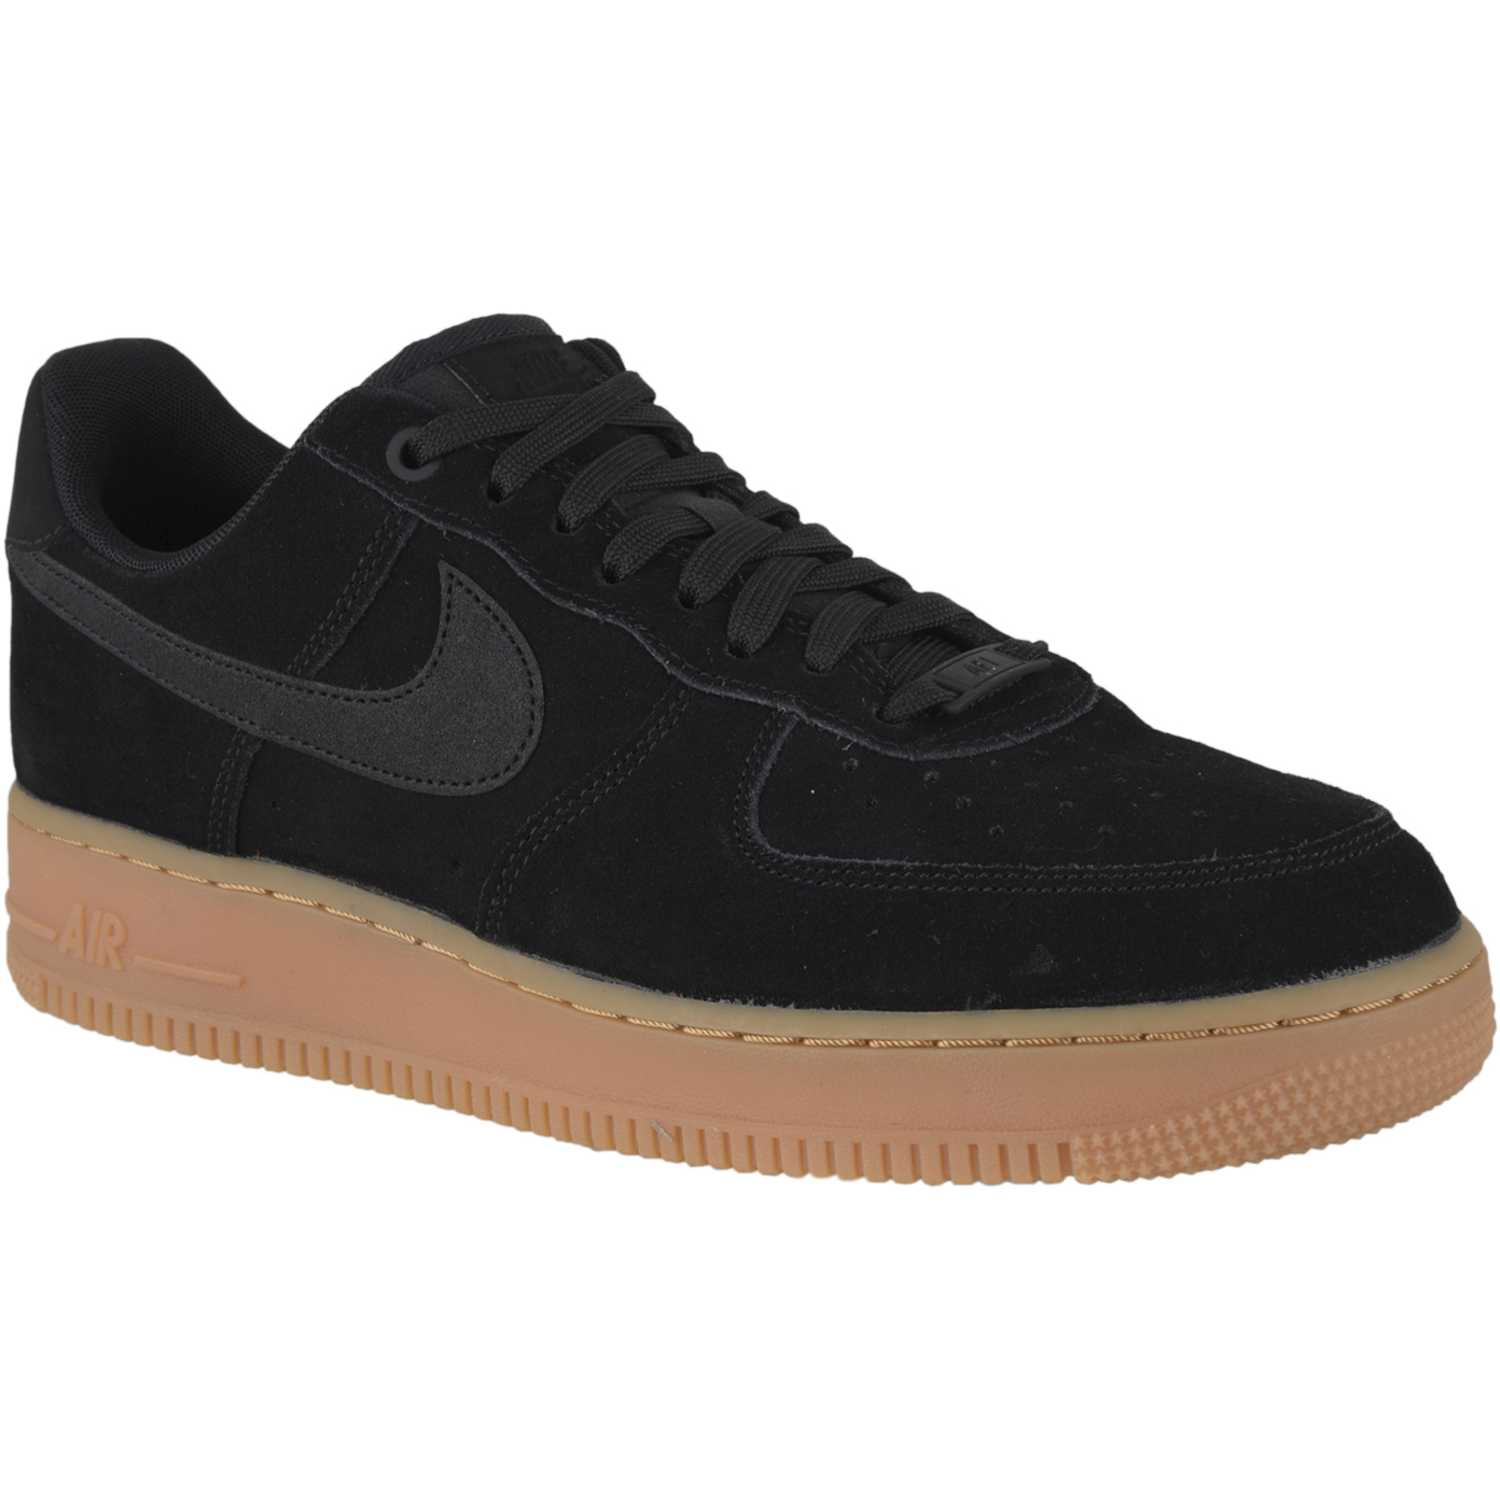 nike air force 1 negras y marron